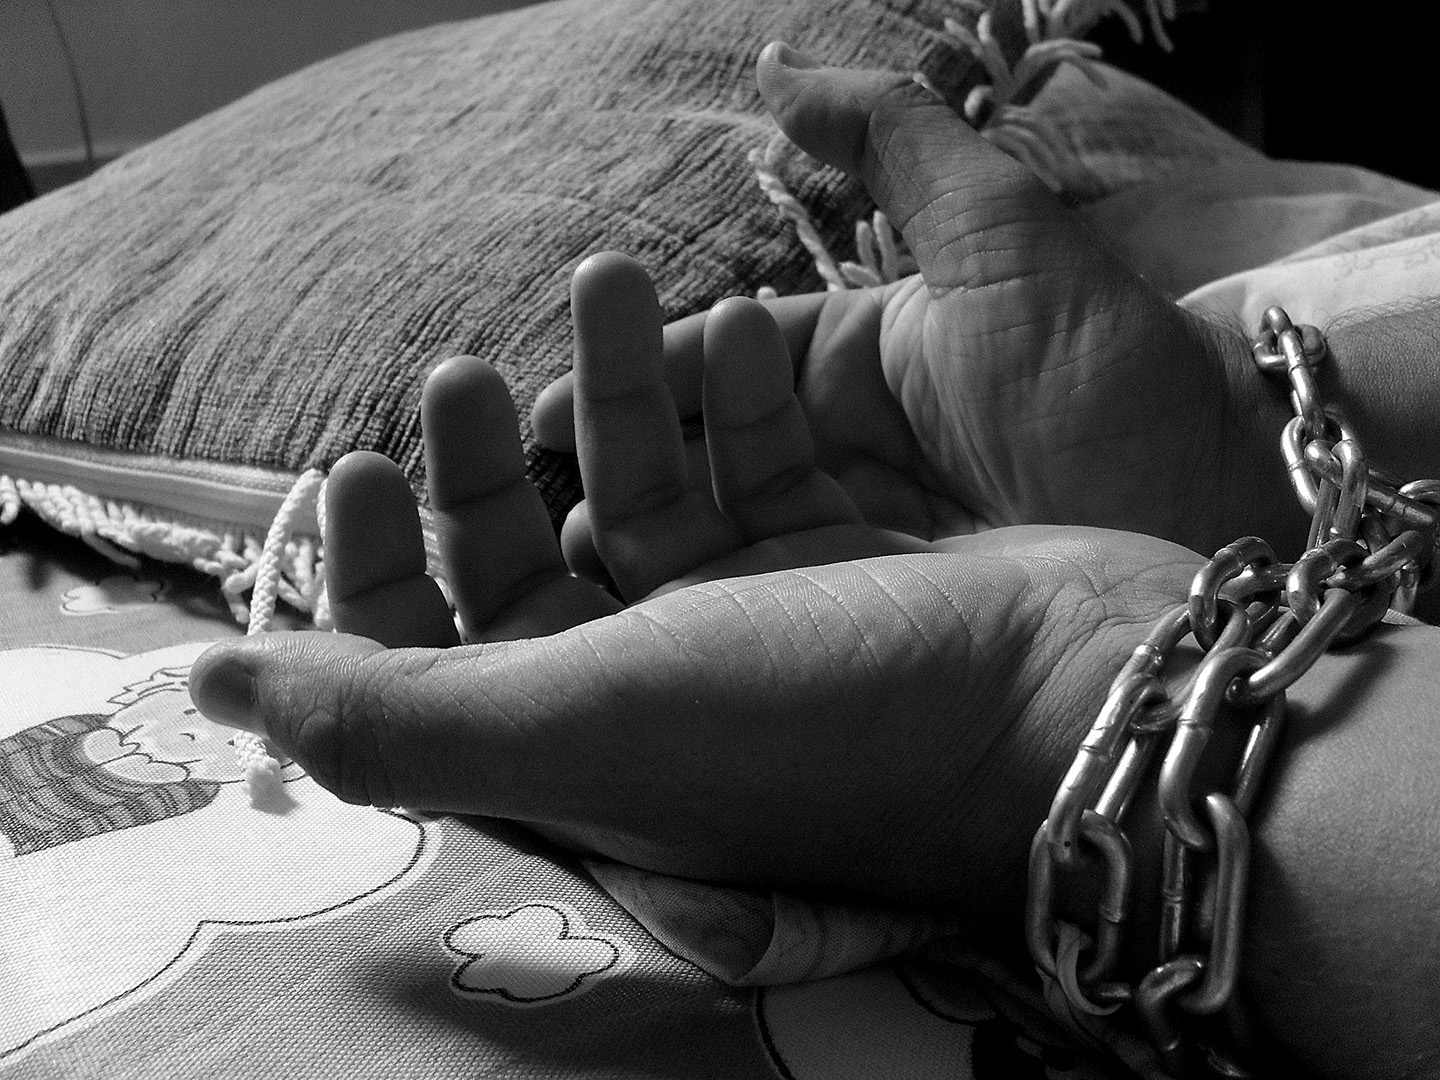 Black and white photo of hands in chains on top of a children's blanket